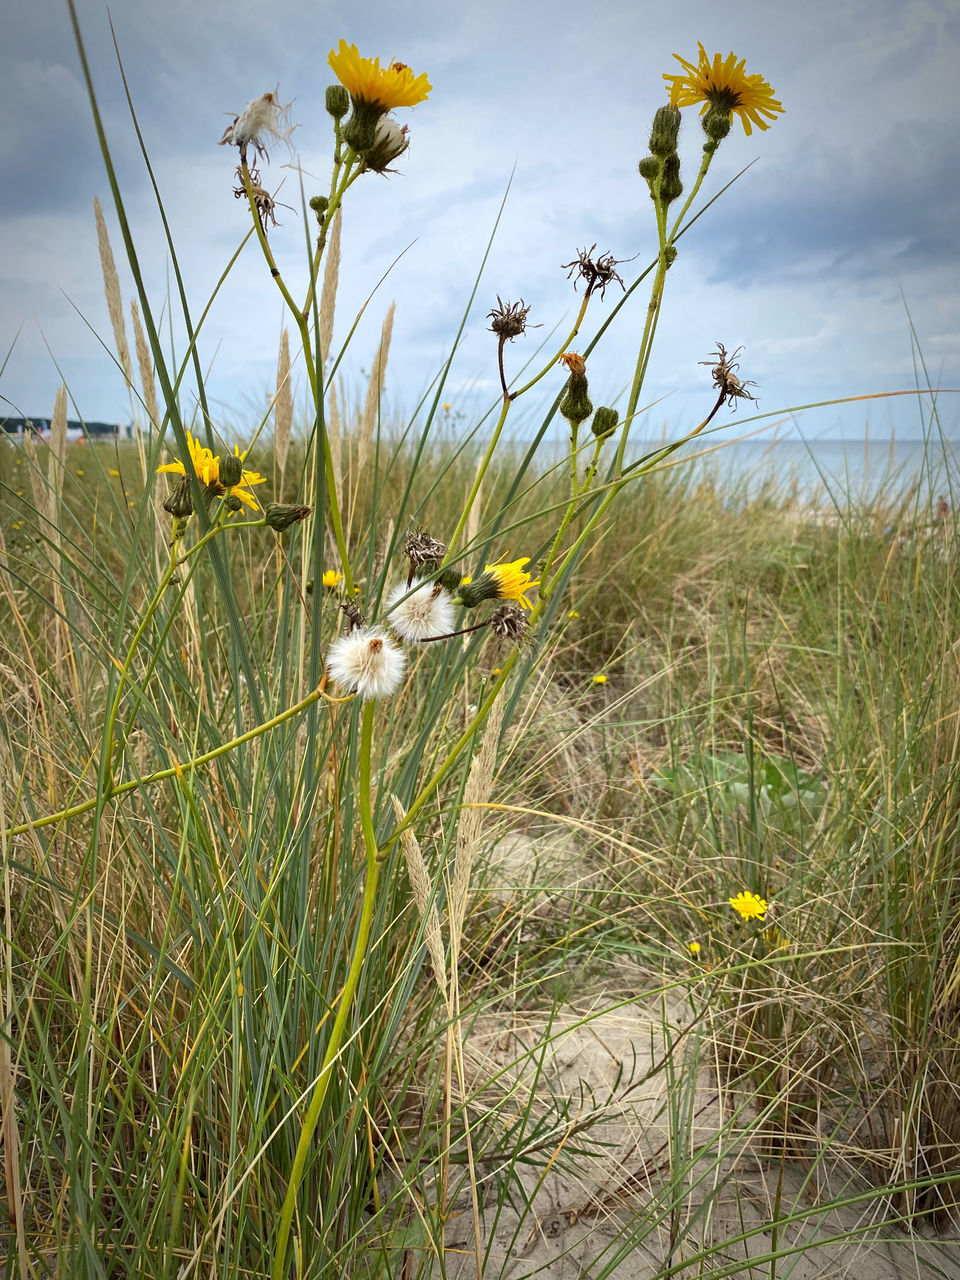 CLOSE-UP OF FLOWERING PLANTS ON LAND